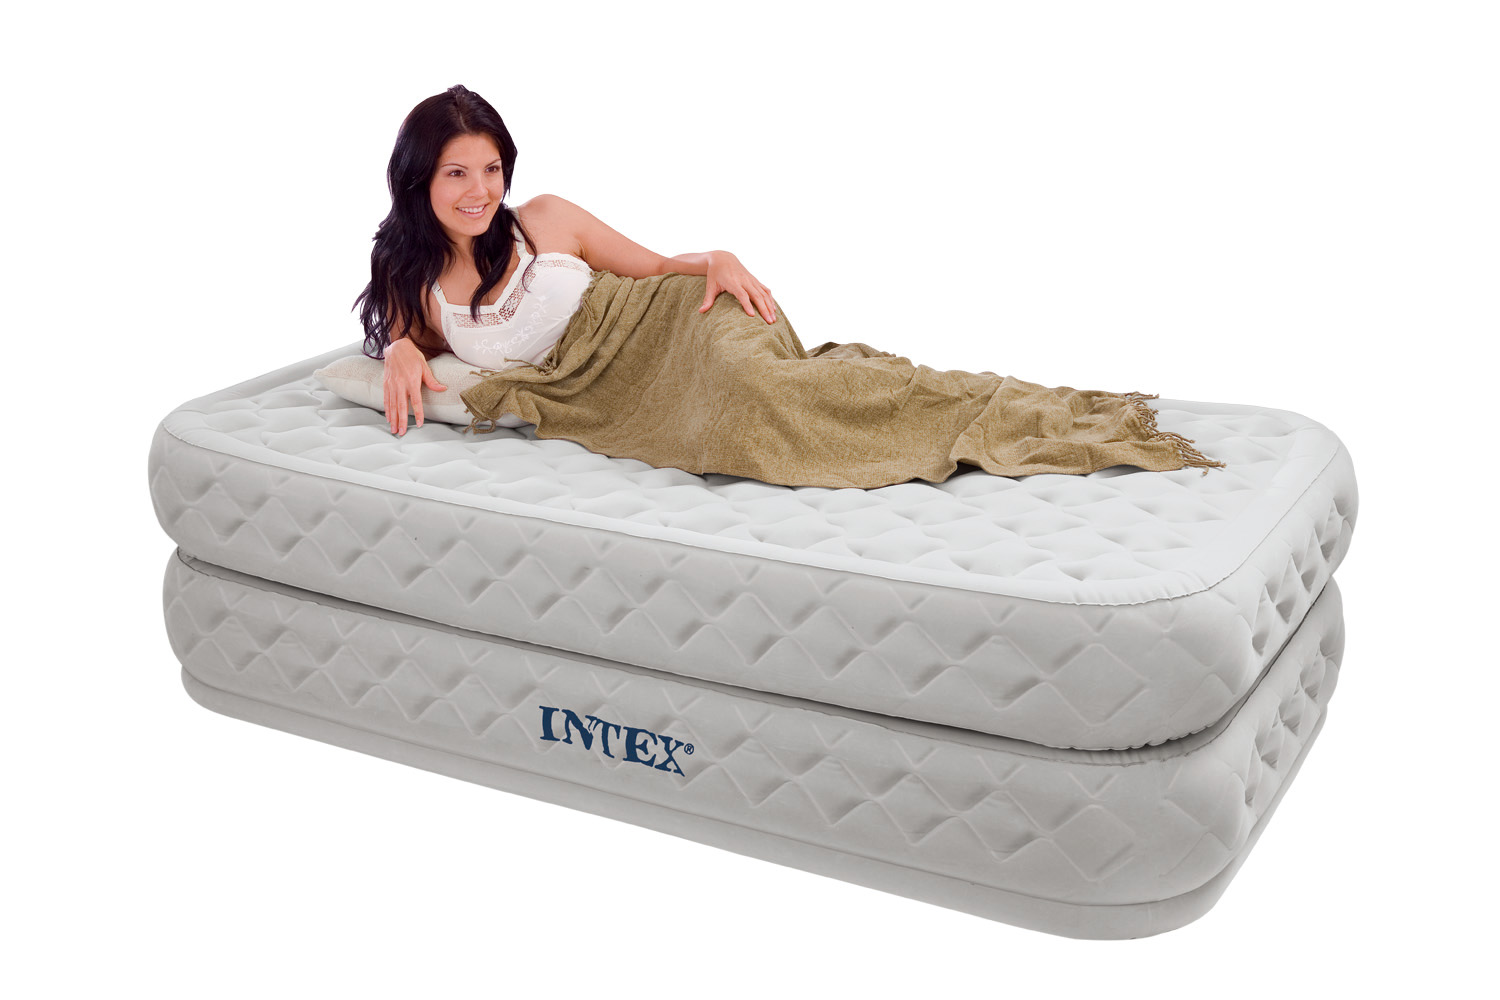 inflatable double sofa bed mattress seat w pump l shape set latest design intex twin supreme air flow raised airbed